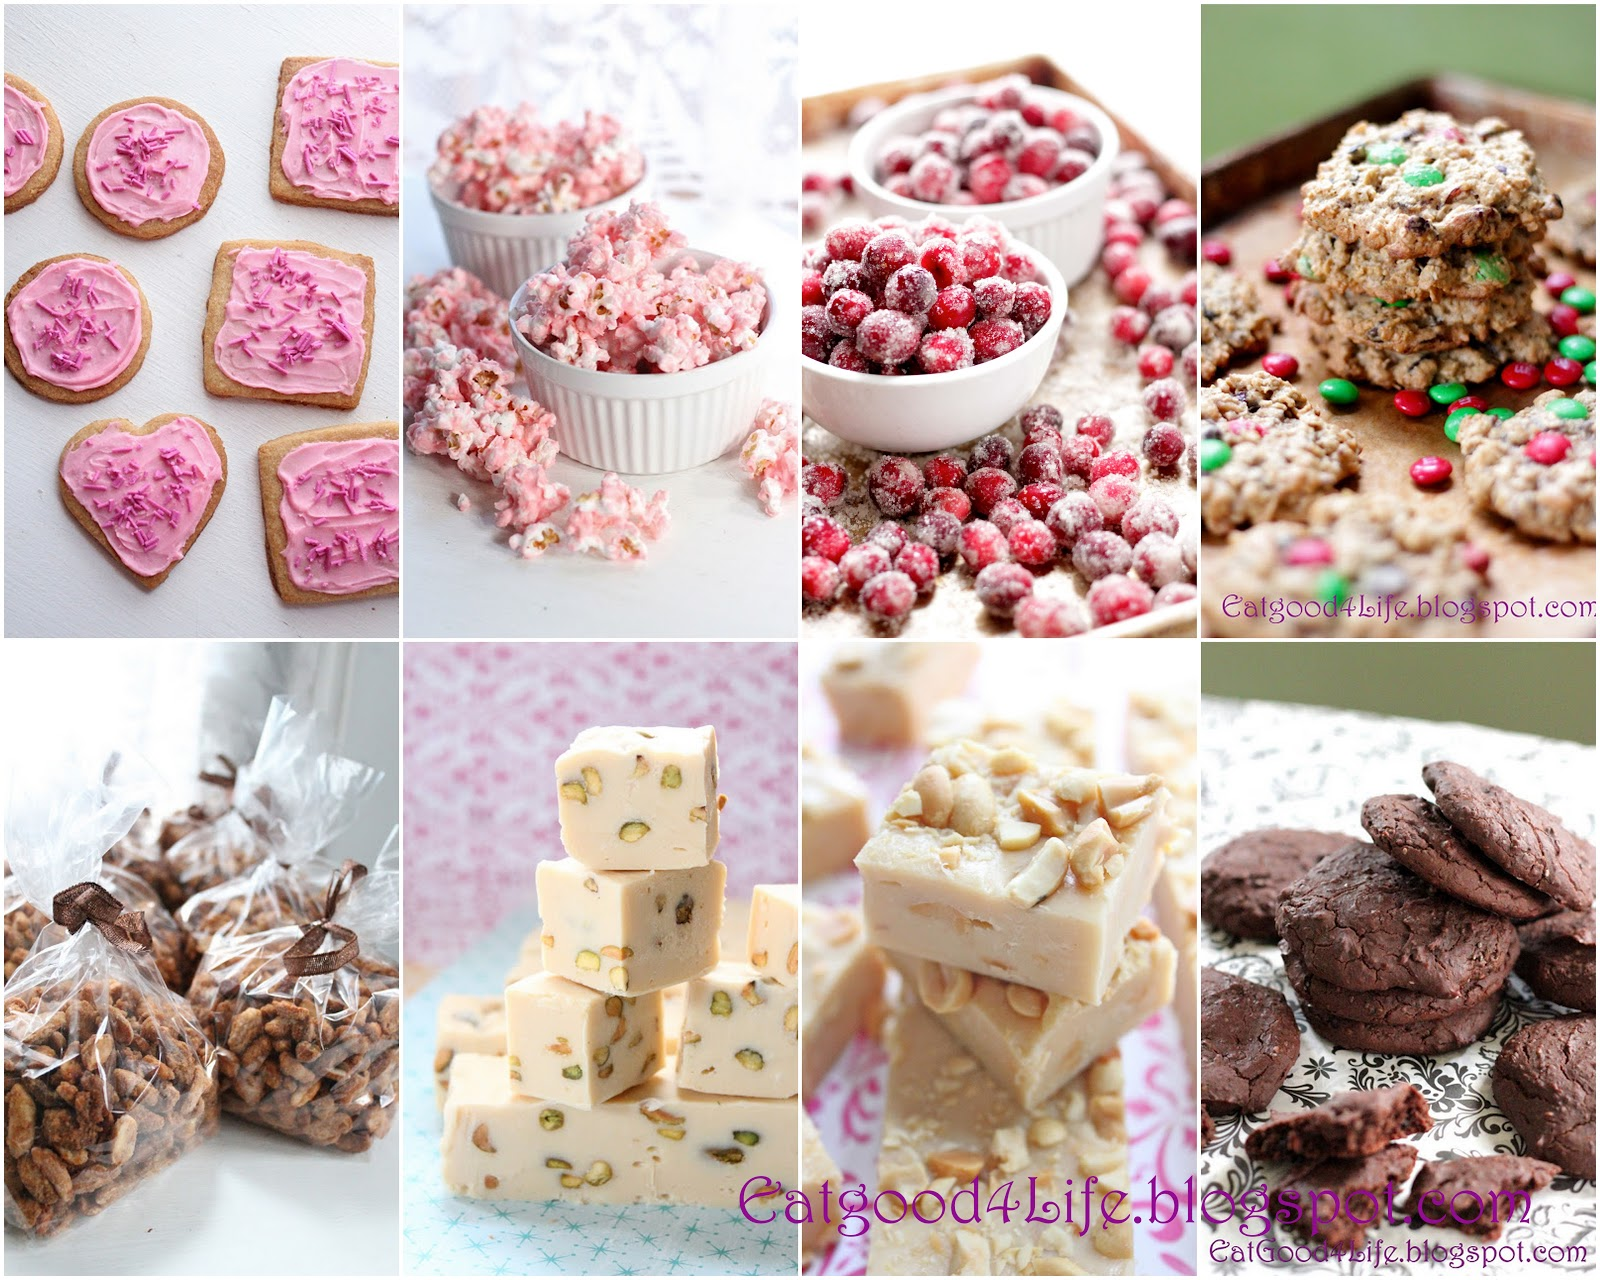 My Top 16 Christmas gift baking ideas | Eat Good 4 Life